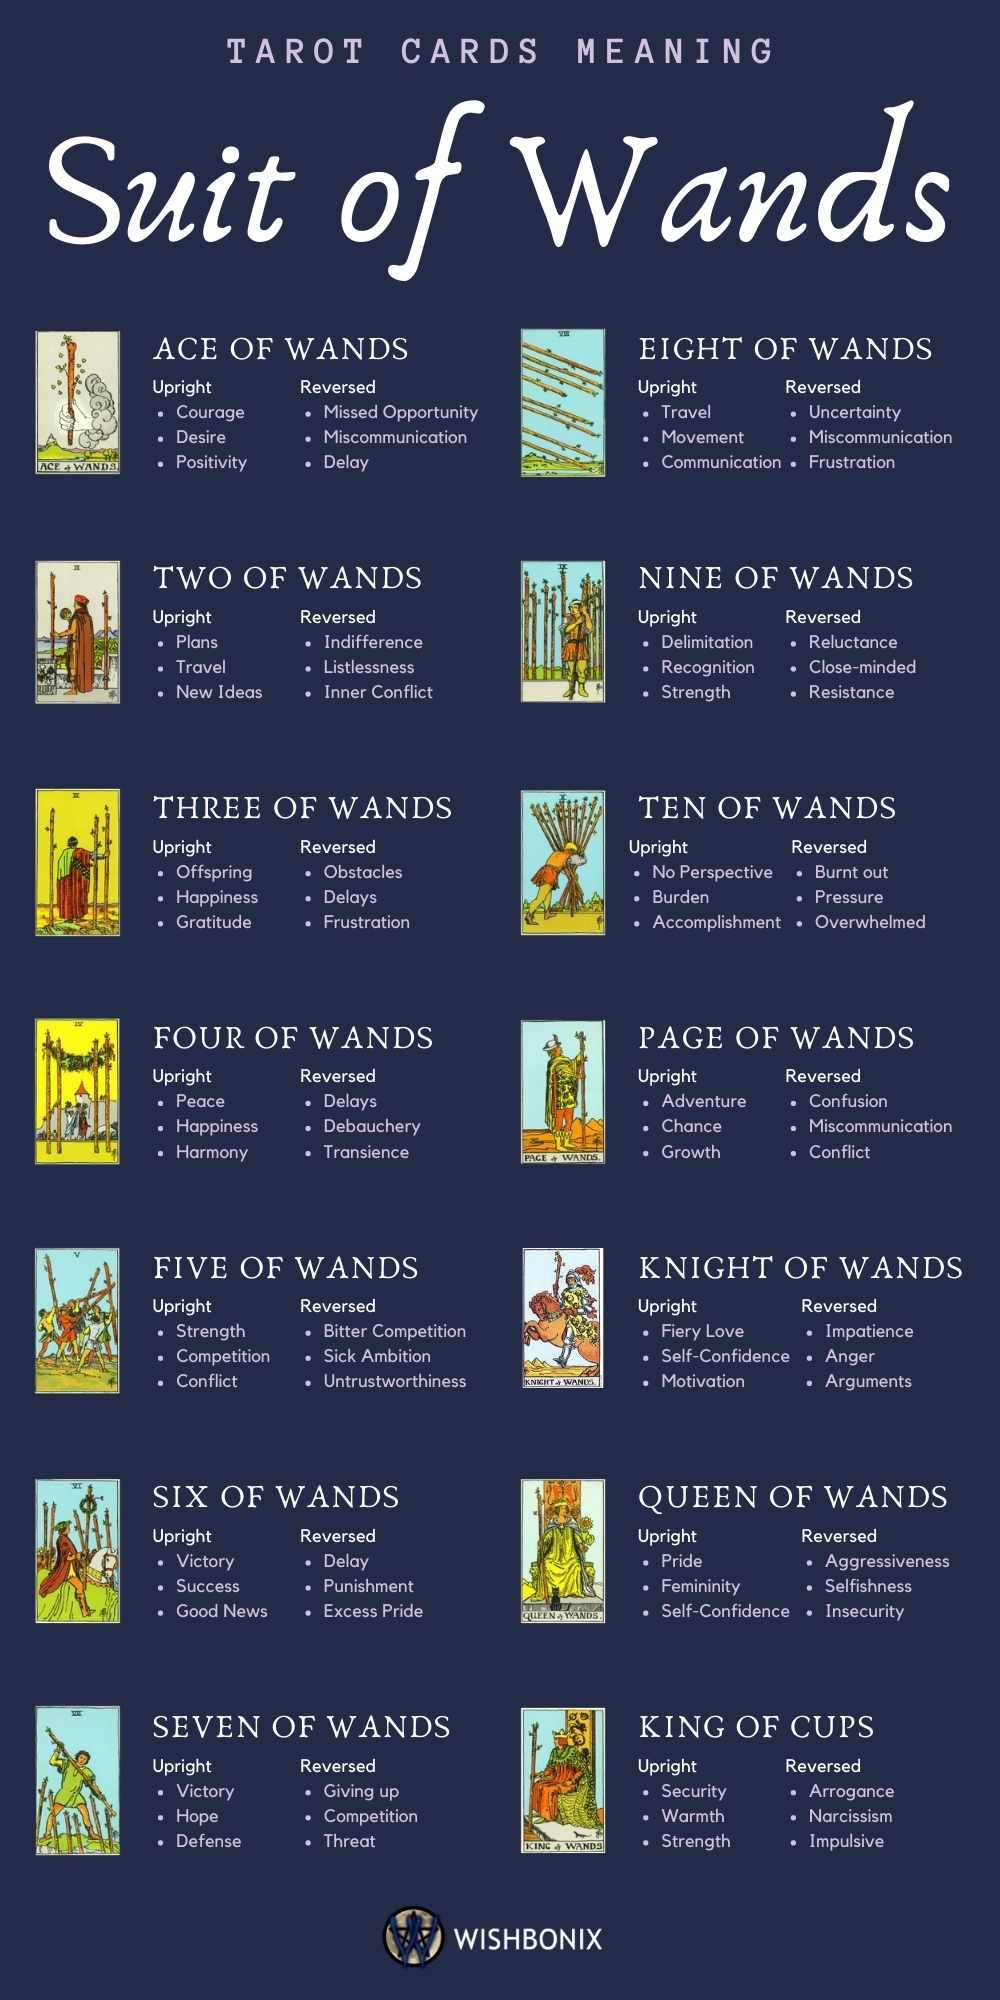 The Suit of Wands - Tarot Cards Meaning